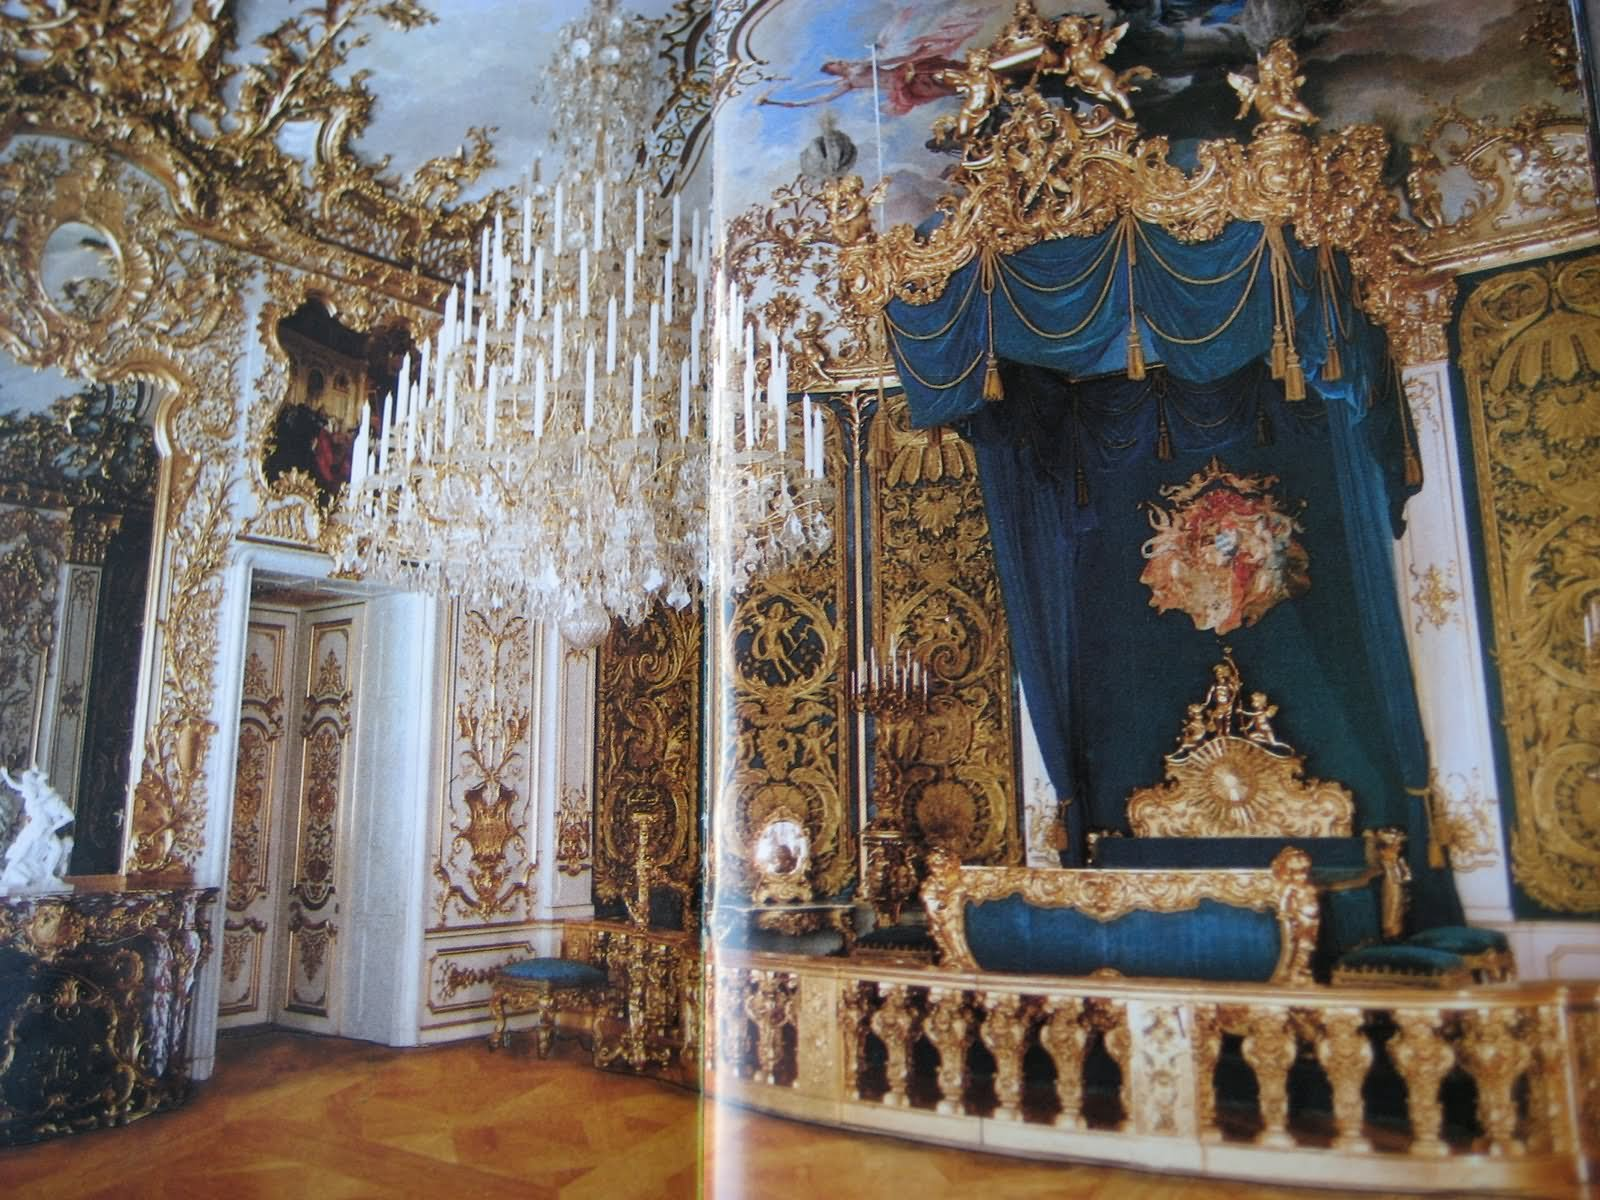 Interior-Room-Of-The-Linderhof-Palace-In-Germany.jpg